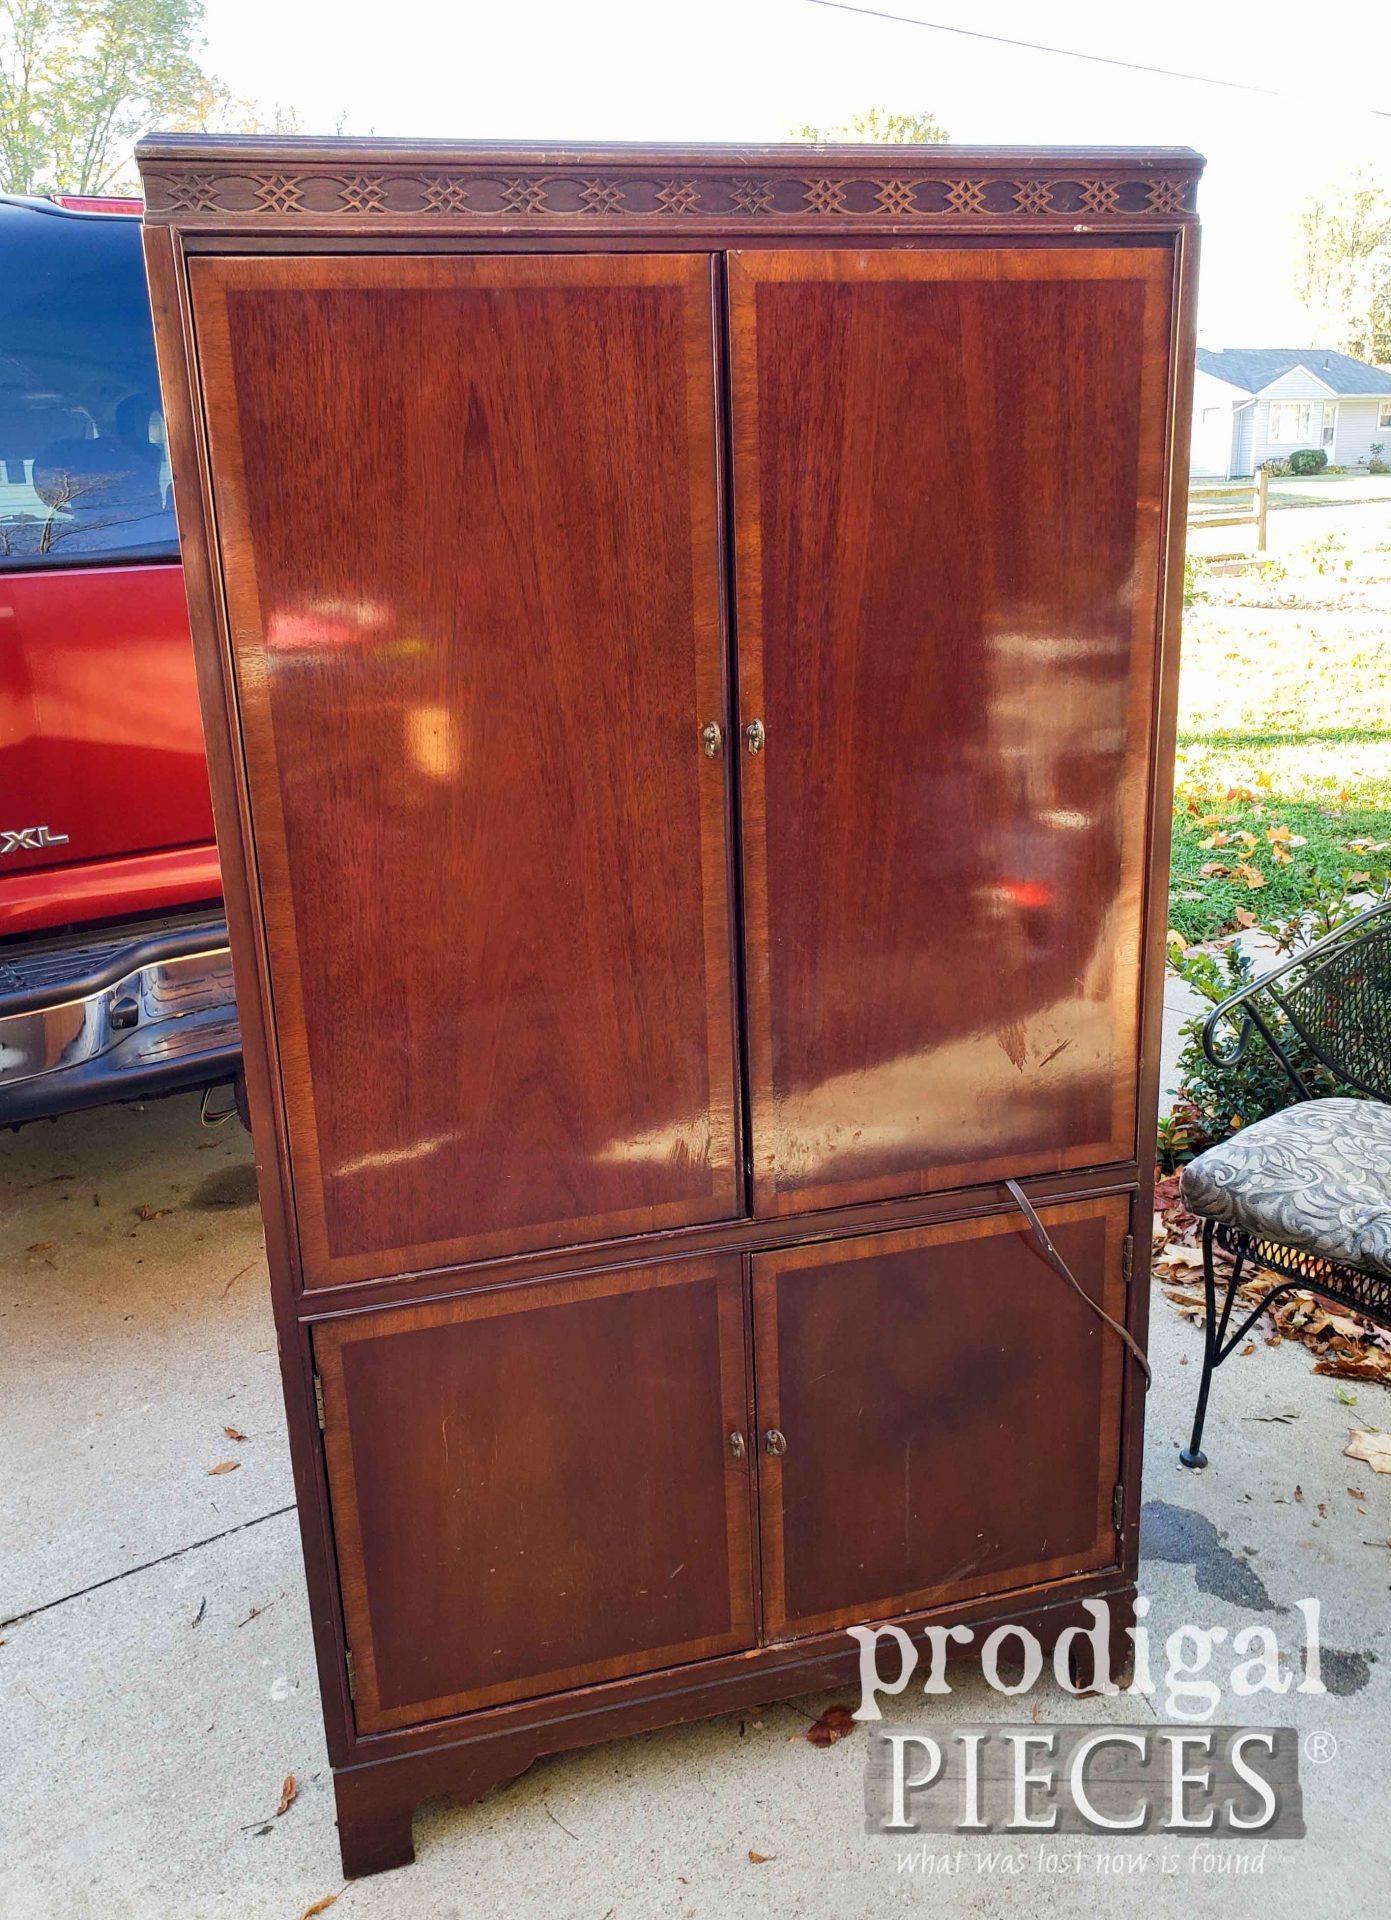 Vintage Entertainment Center Before Upcycle by Larissa of Prodigal Pieces | prodigalpieces.com #prodigalpieces